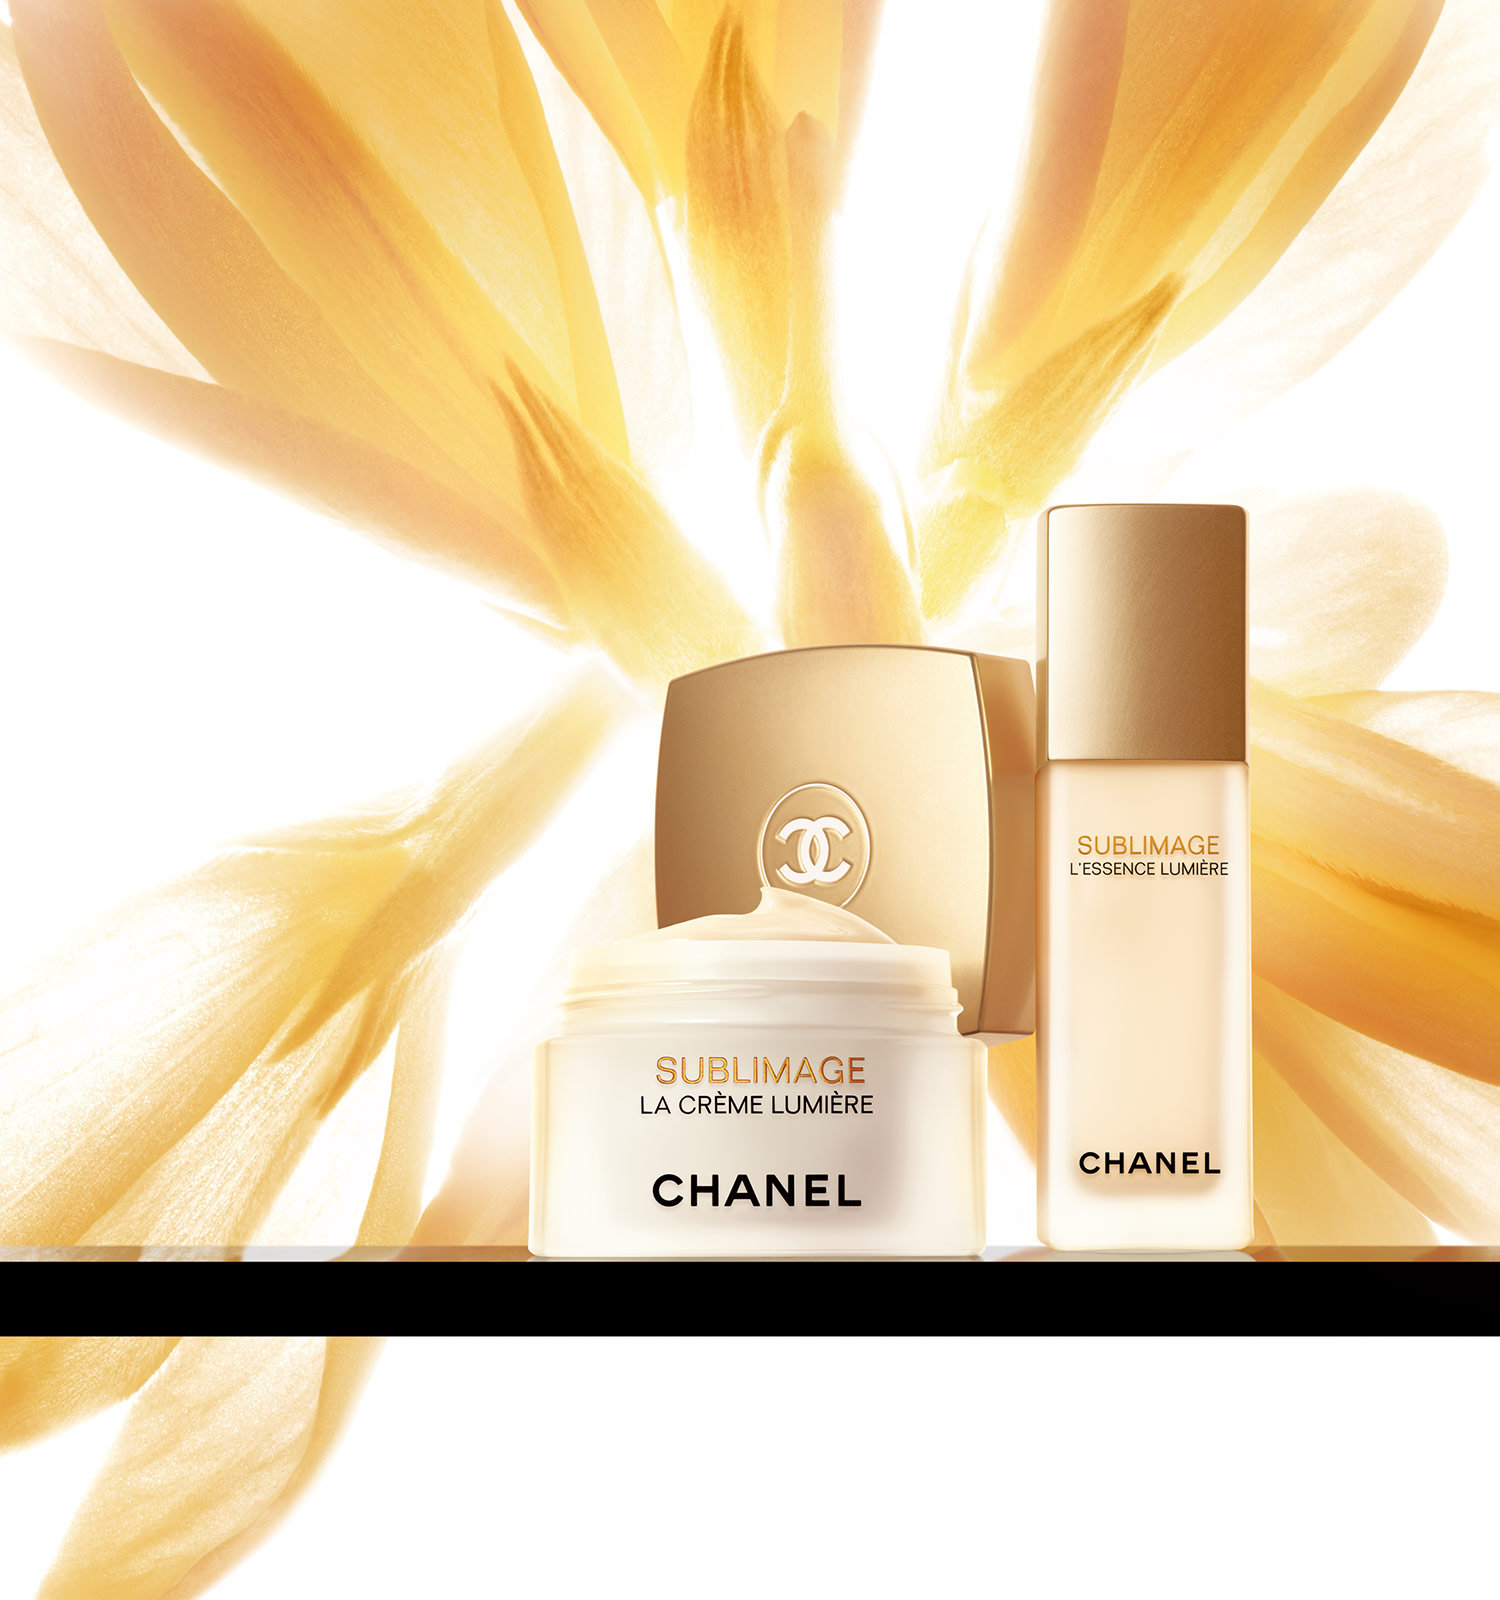 Sublimage - CHANEL